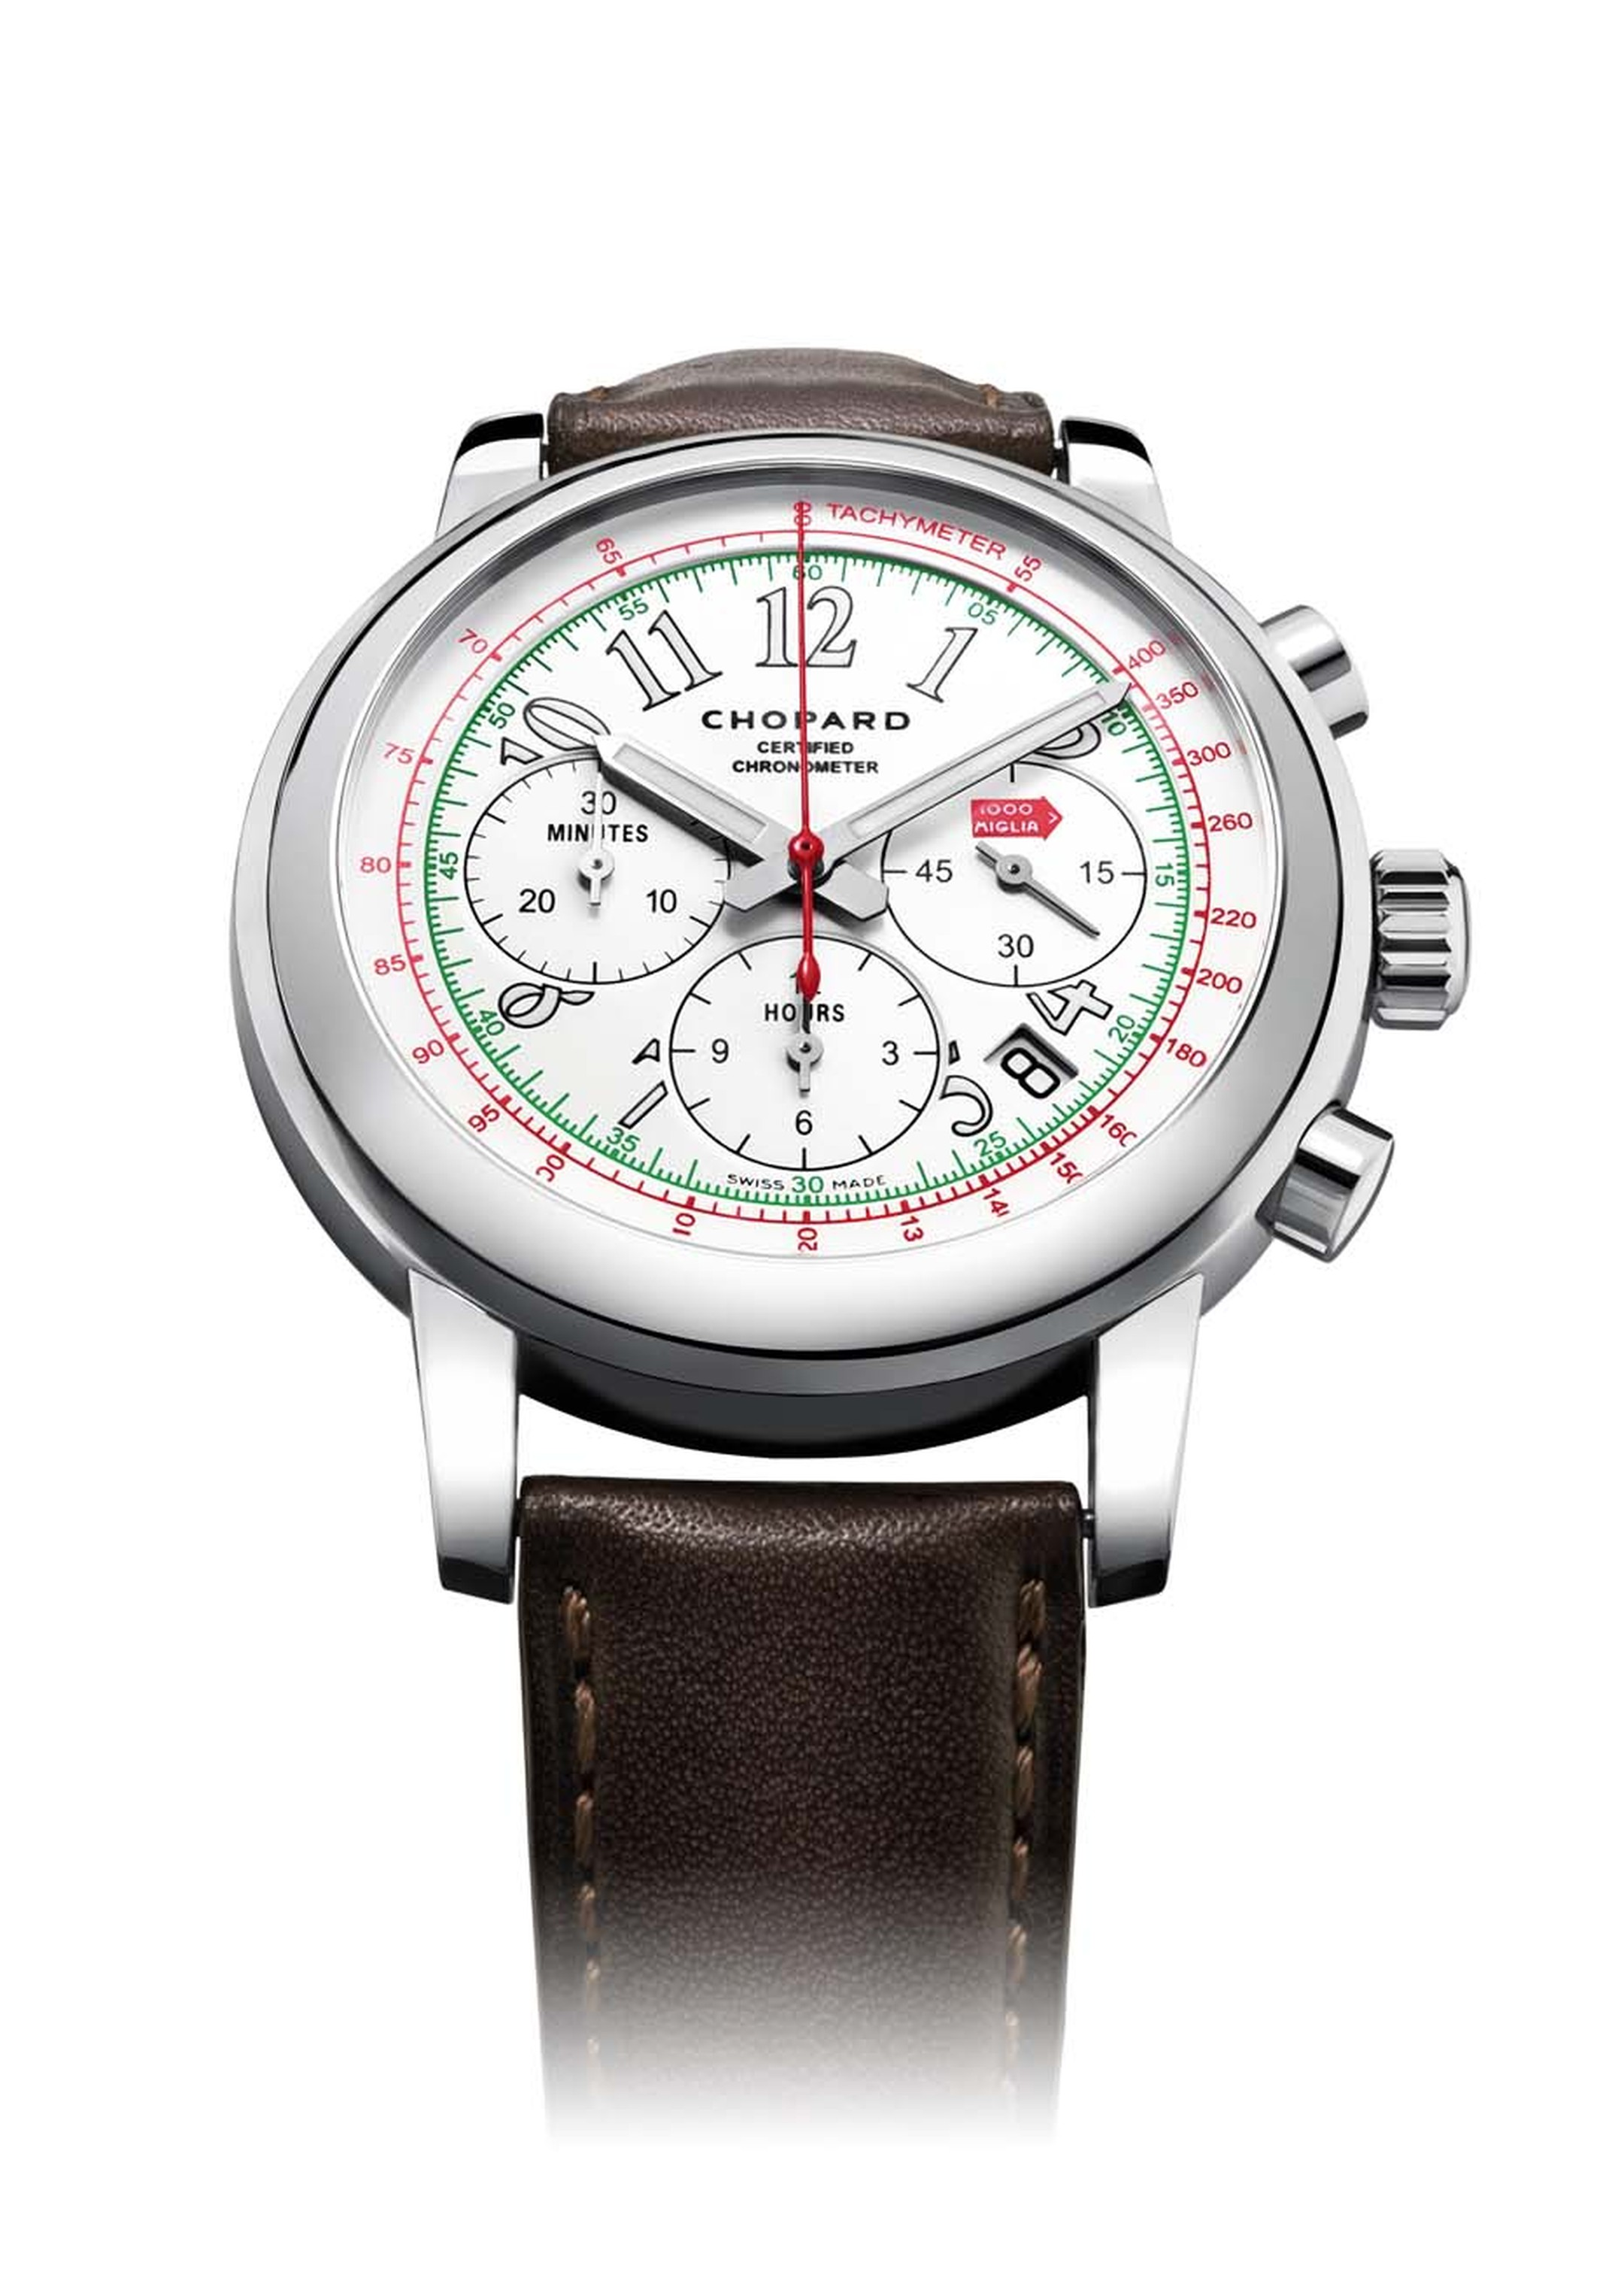 The 2014 Chopard Mille Miglia Chronograph is also available in stainless steel.